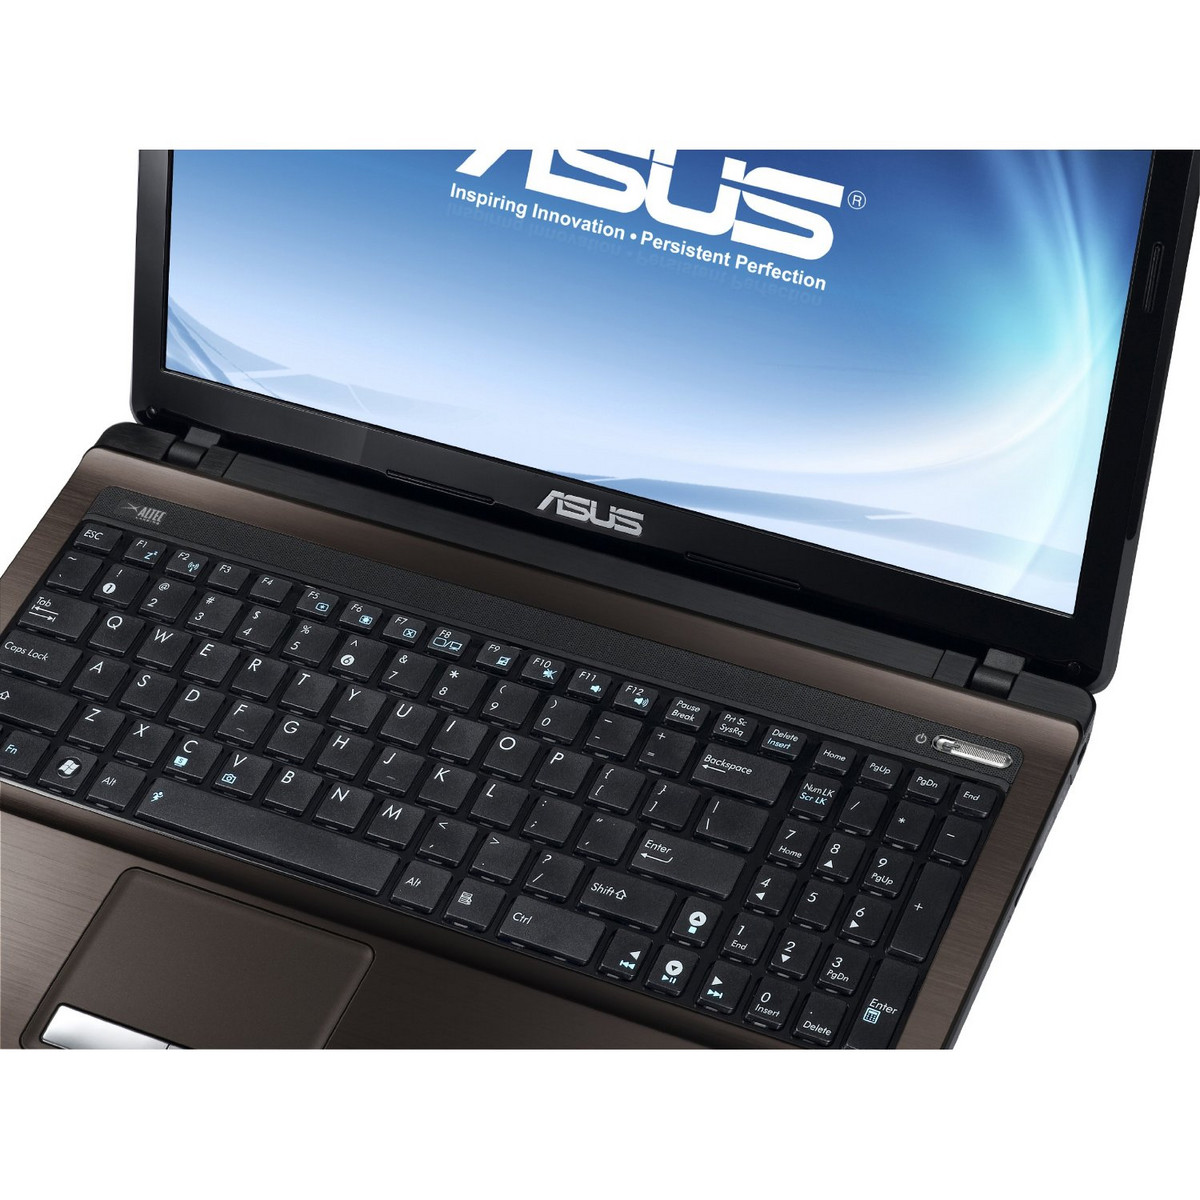 Drivers Sony Vaio VPCEH24FX/P Alps TouchPad